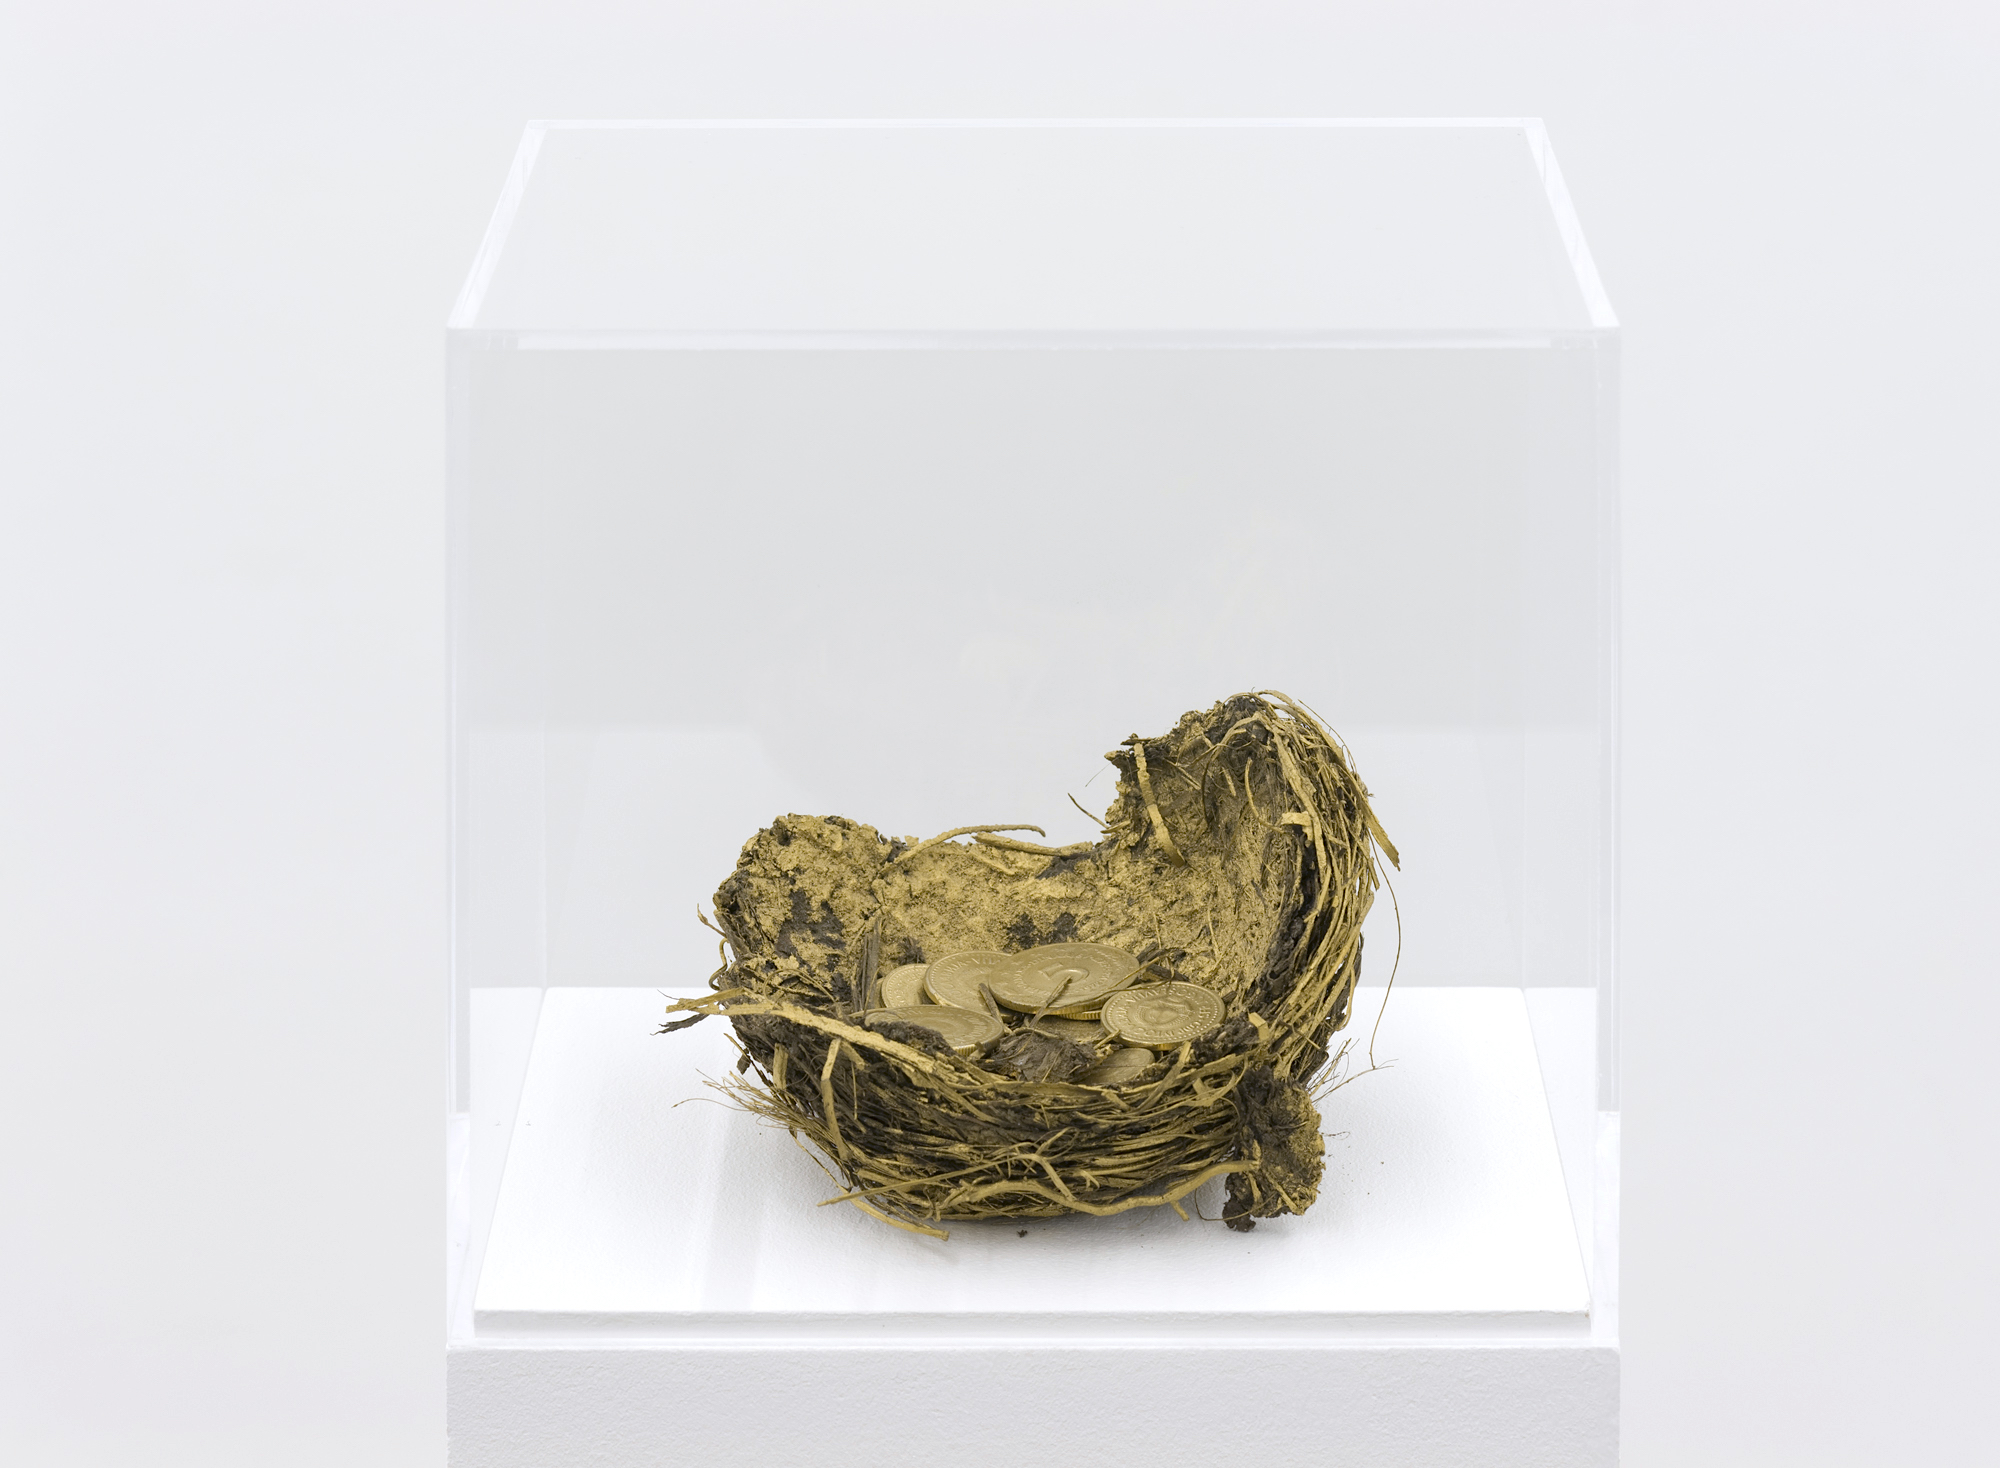 Untitled (Object 5), nest, golden paint, coins, 11 x 10.5 x 6.5 cm, ca. 1985